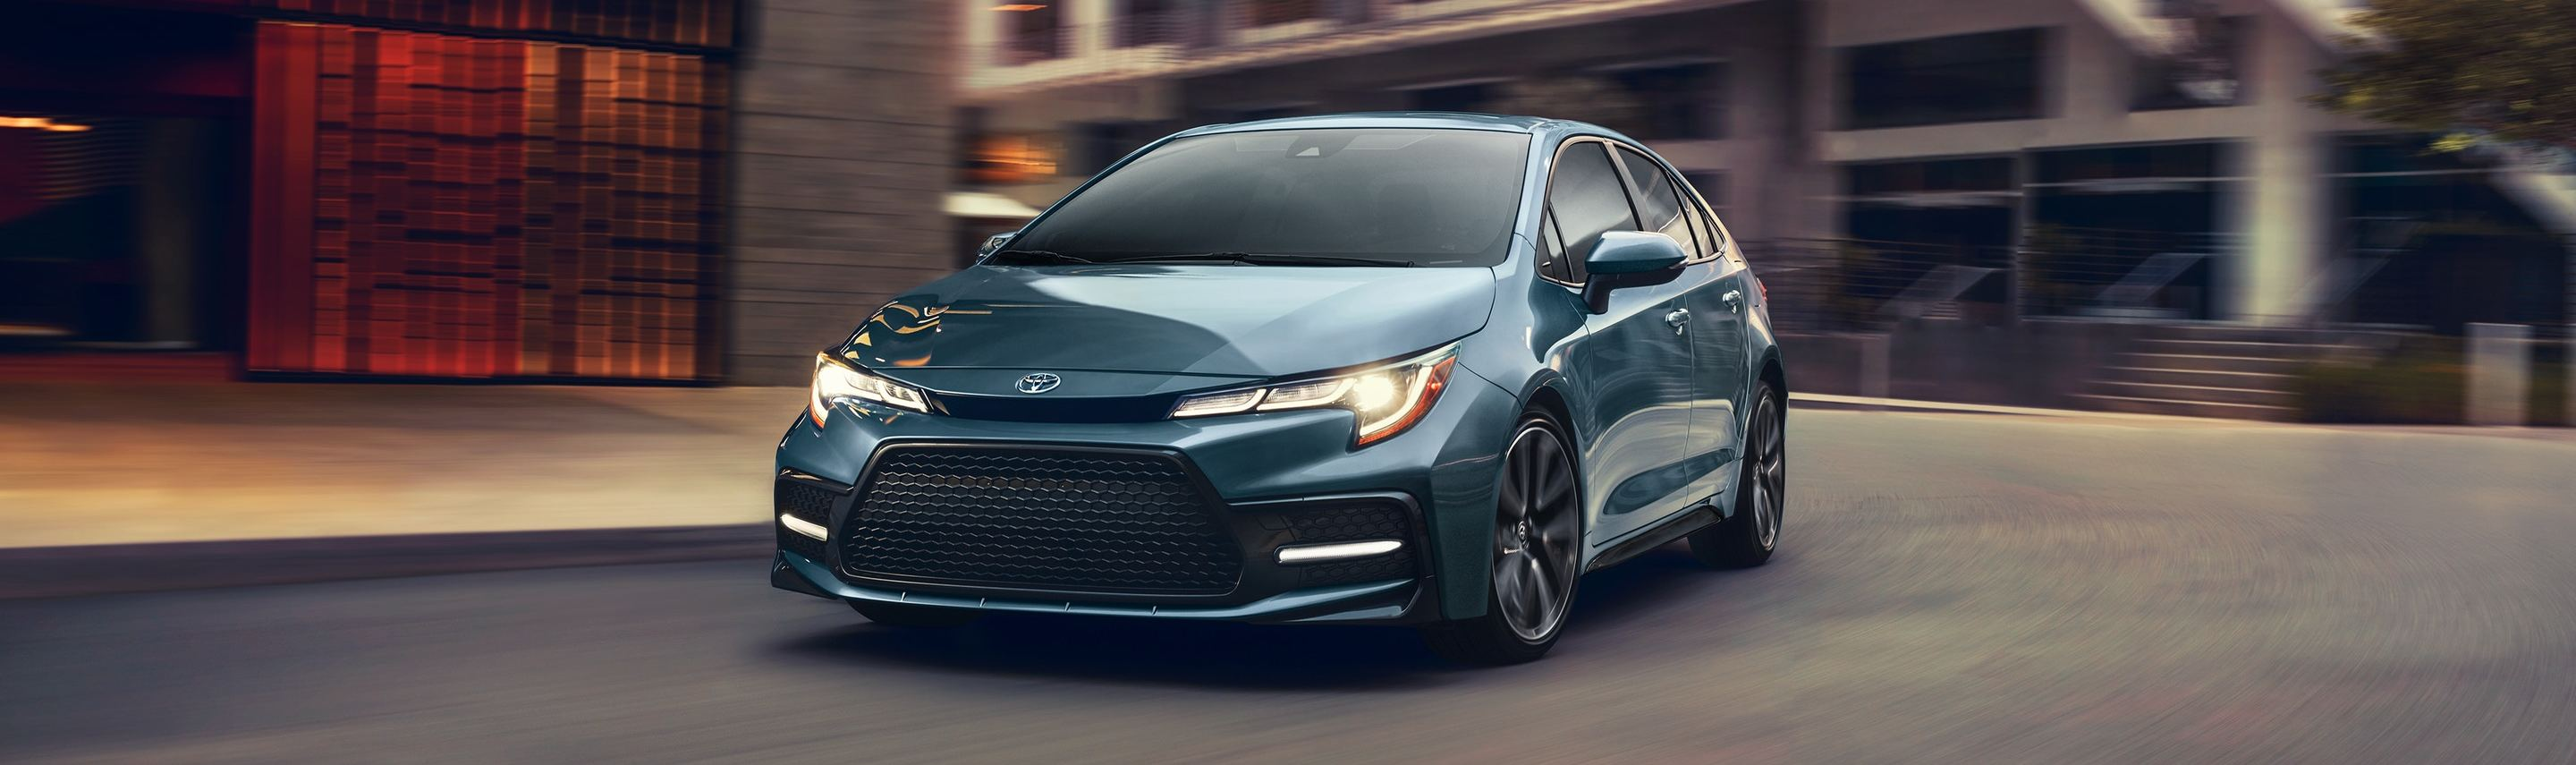 2020 Toyota Corolla for Sale near Perrysburg,OH